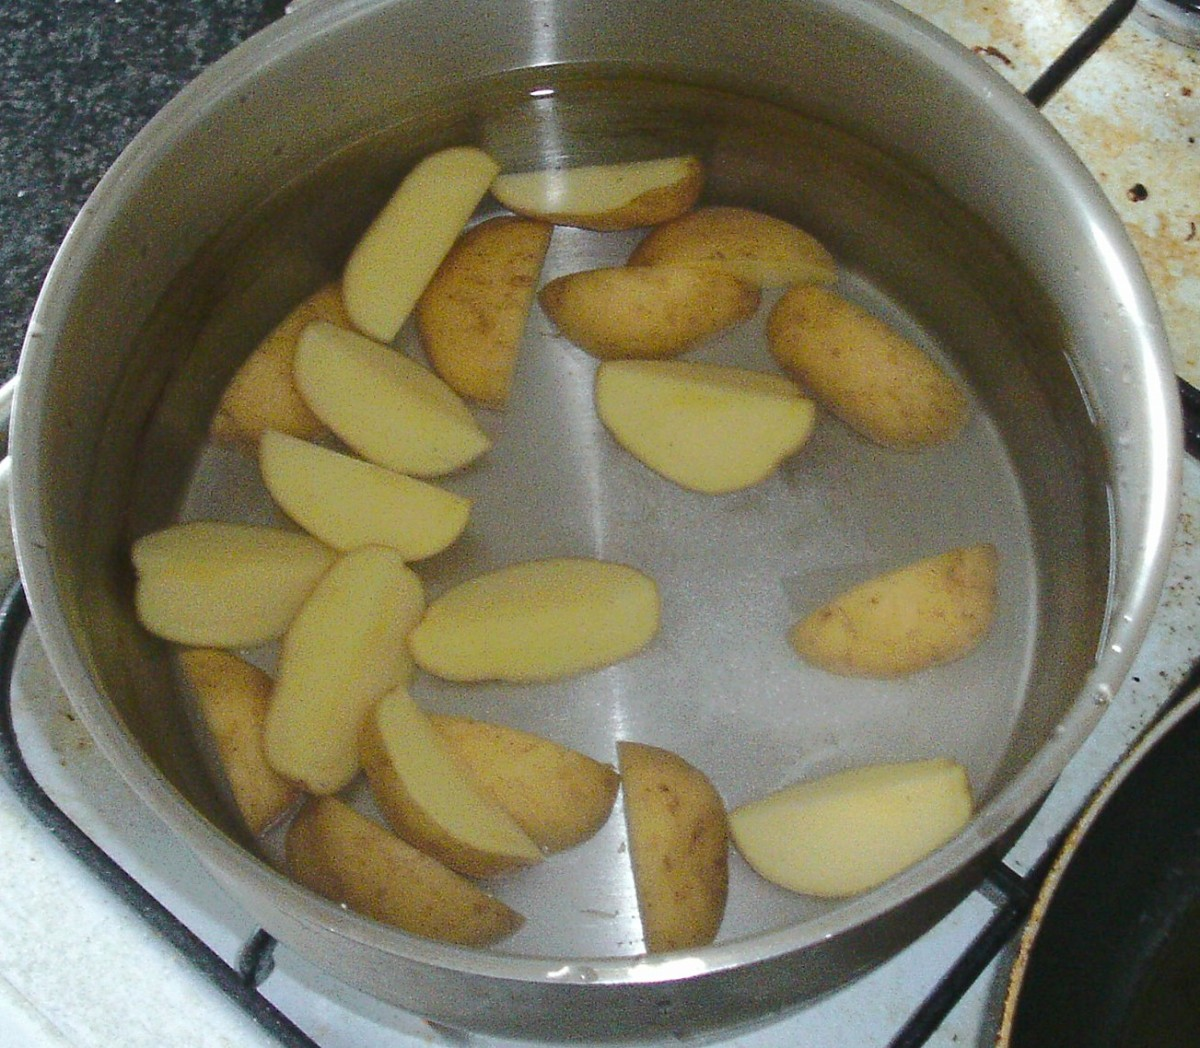 Quartered potatoes are added to cold salted water and put on to cook